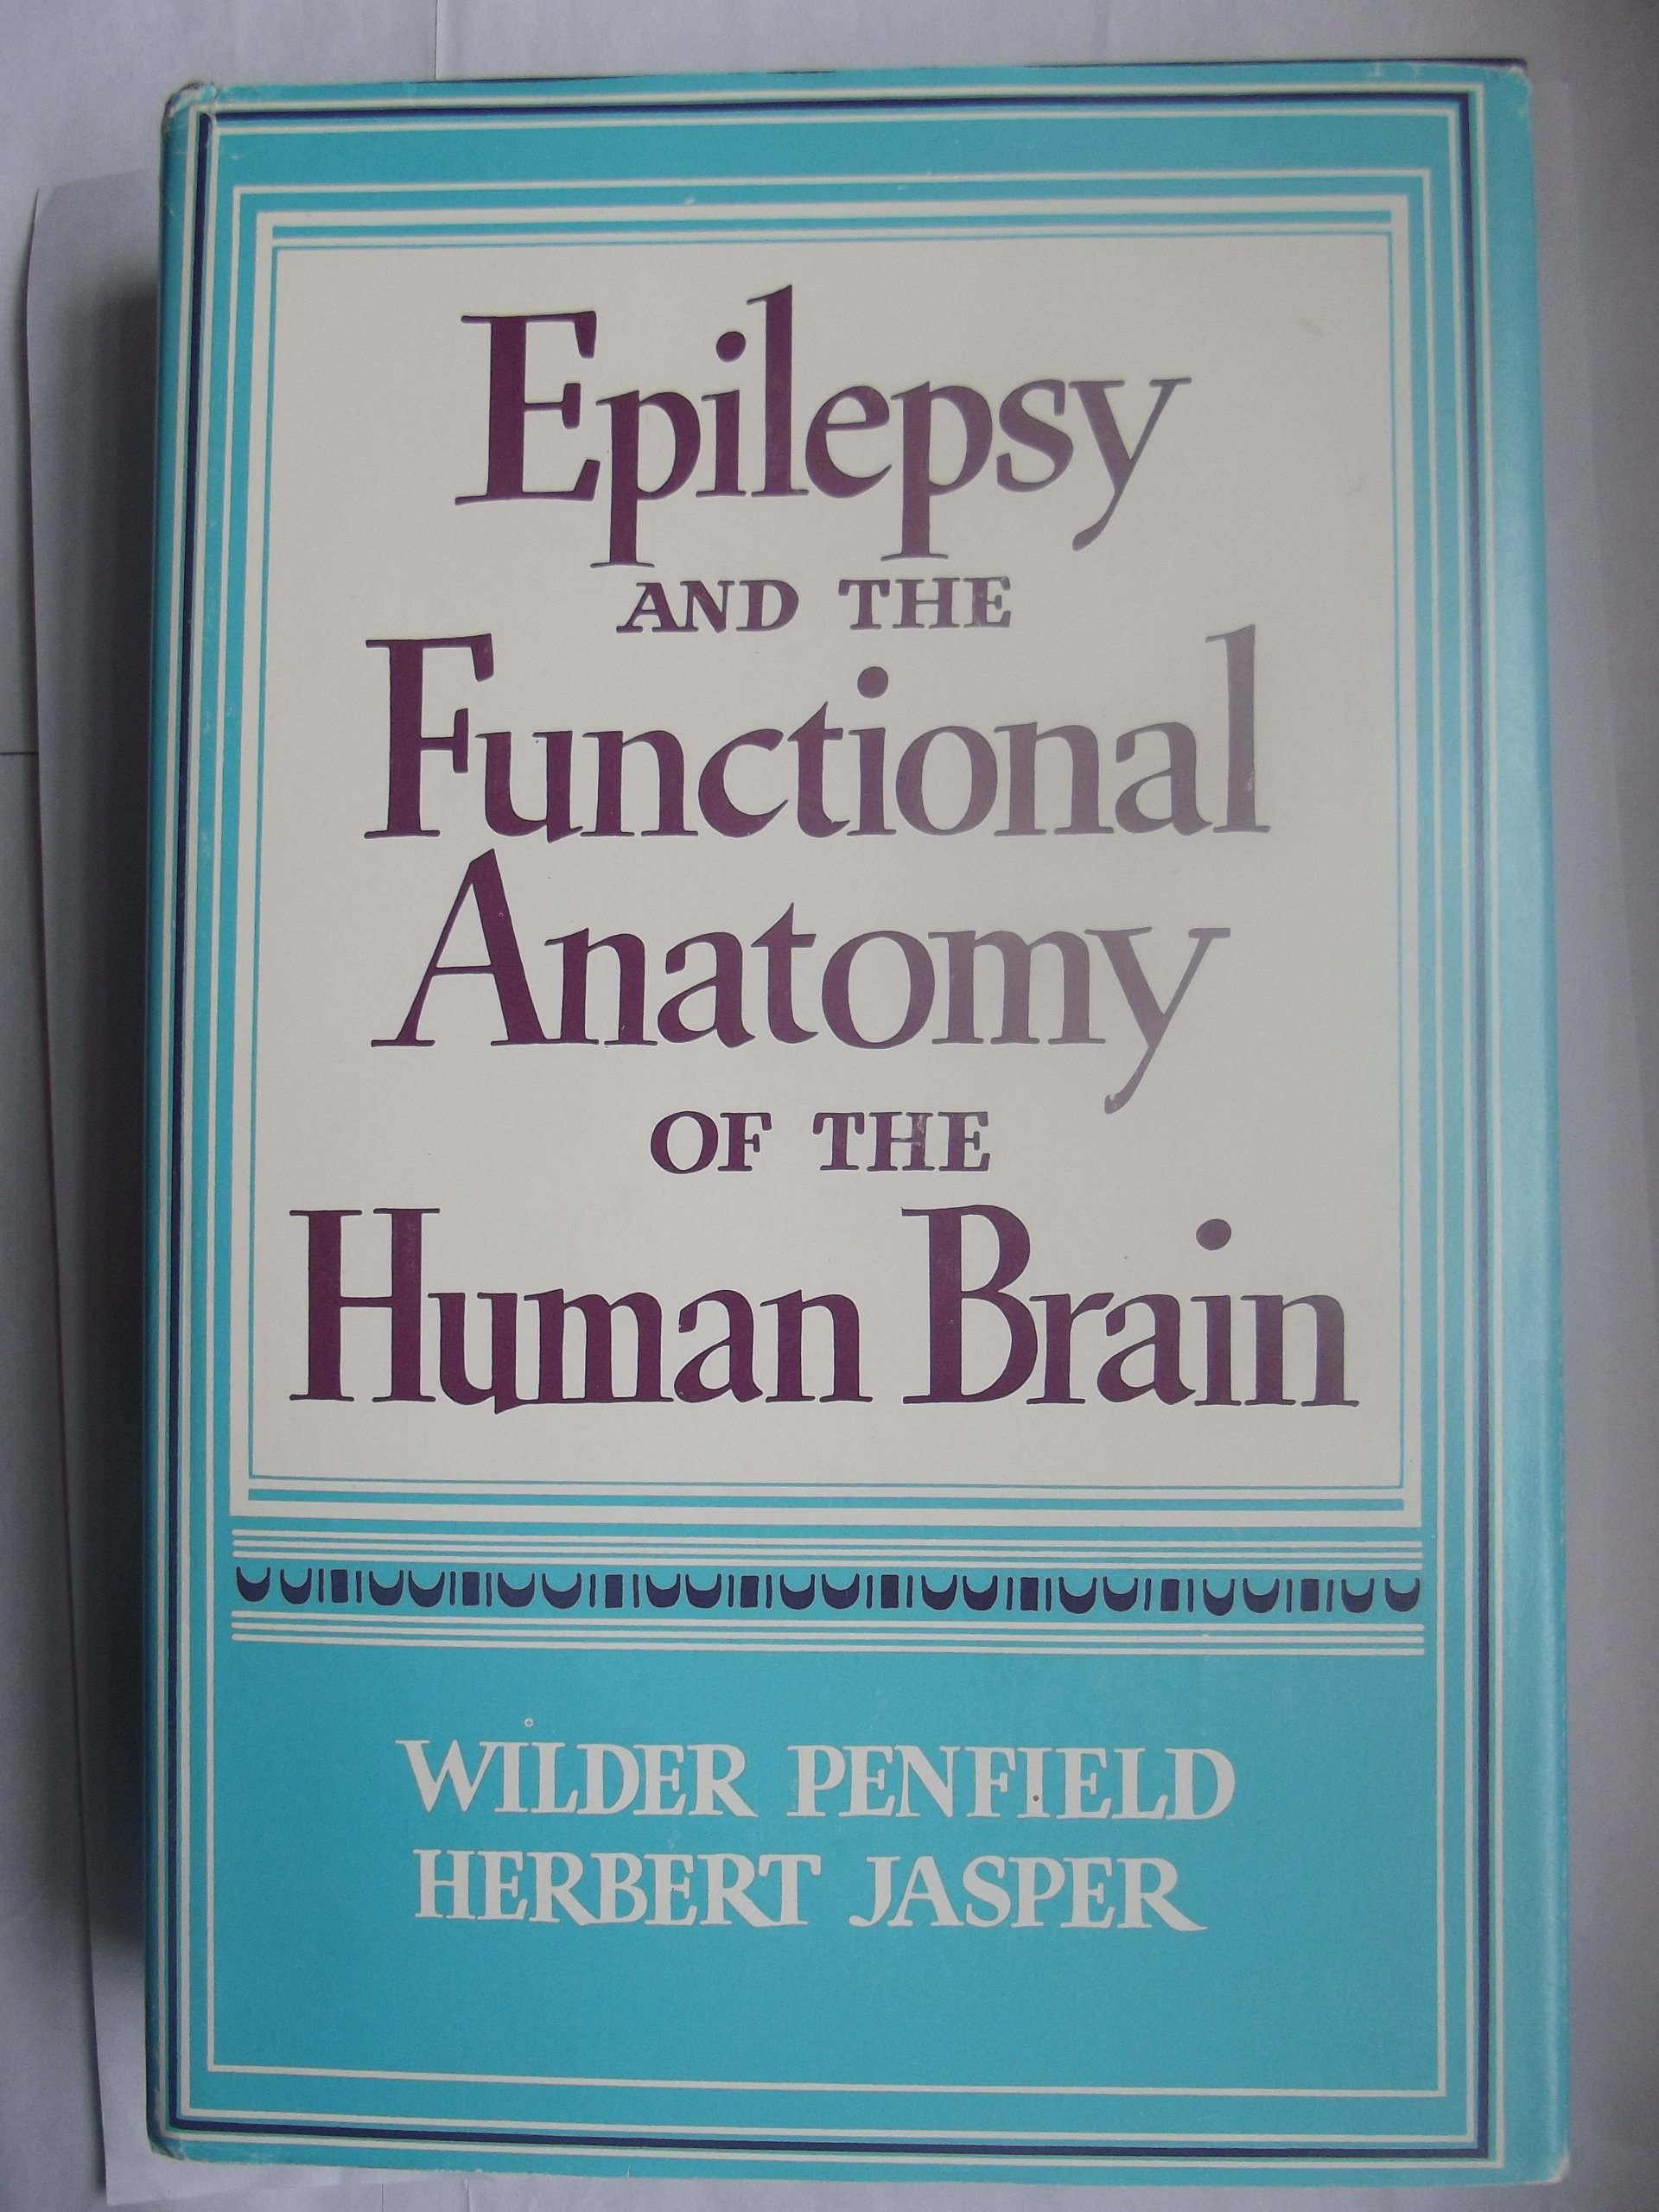 Epilepsy And The Functional Anatomy Of The Human Brain Wilder